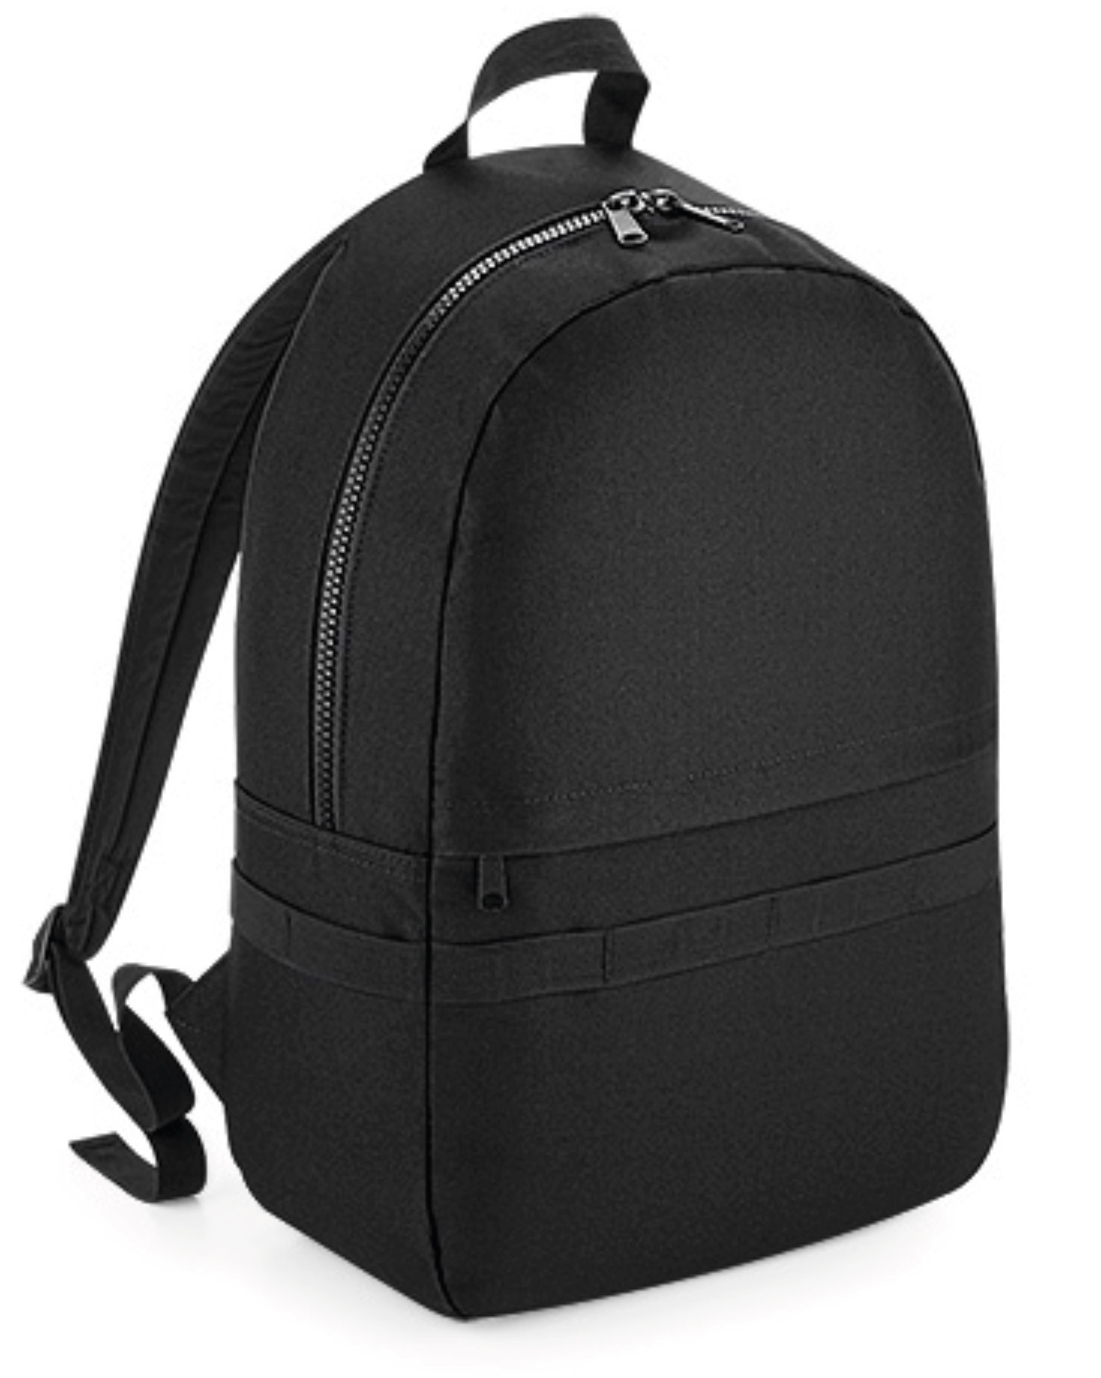 5130_BG240_Modulr_20-Litre-Backpack_Black_002